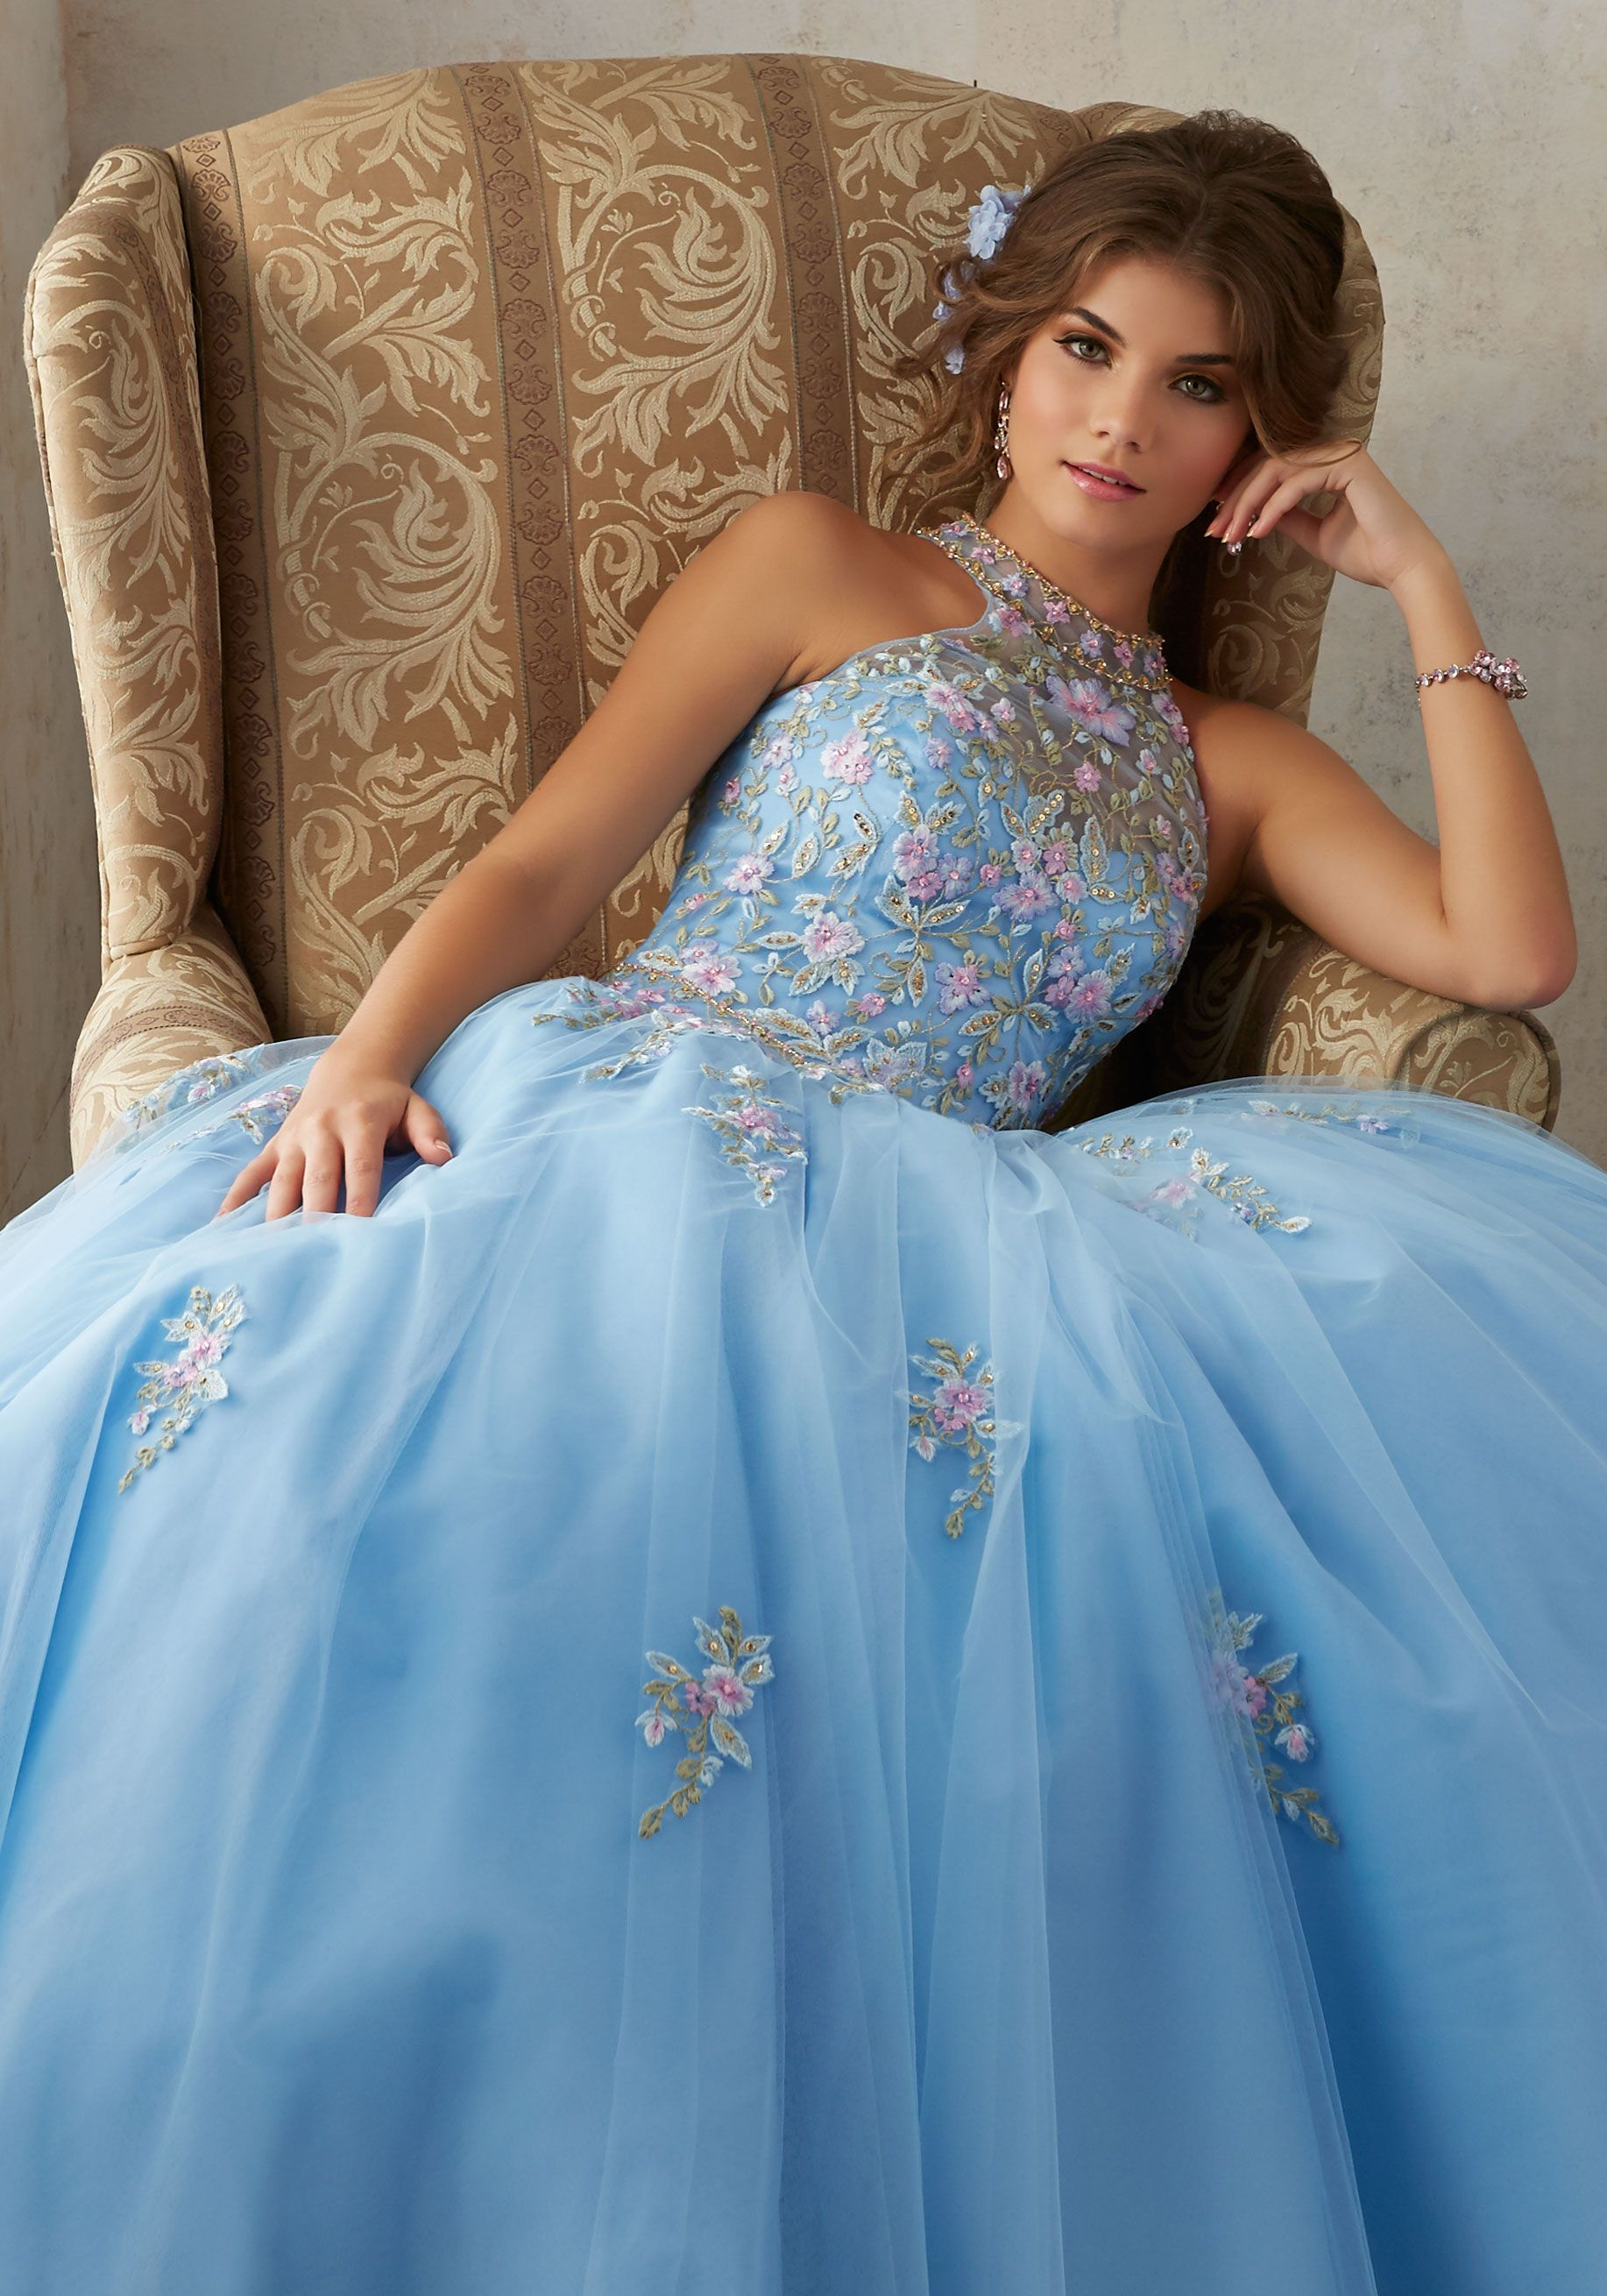 209053577b Morilee Quinceanera Dresses STYLE NUMBER  89134 Embroidery and Beading on a  Tulle Ballgown Gorgeous Floral Embroidey Takes Center Stage on This Tulle  ...